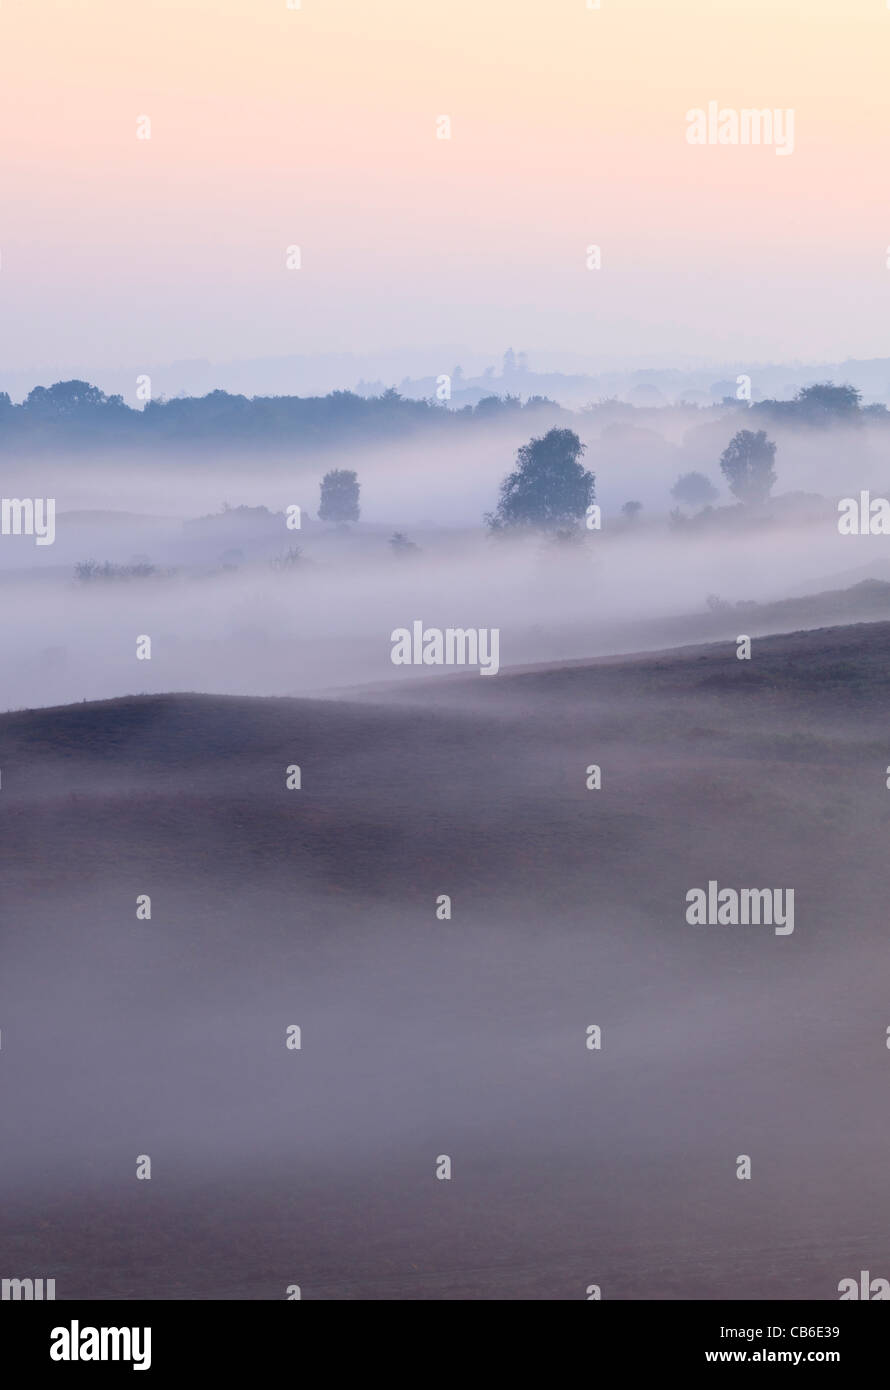 A misty autumn dawn at Rockford Common in the New Forest National Park, Hampshire, UK - Stock Image